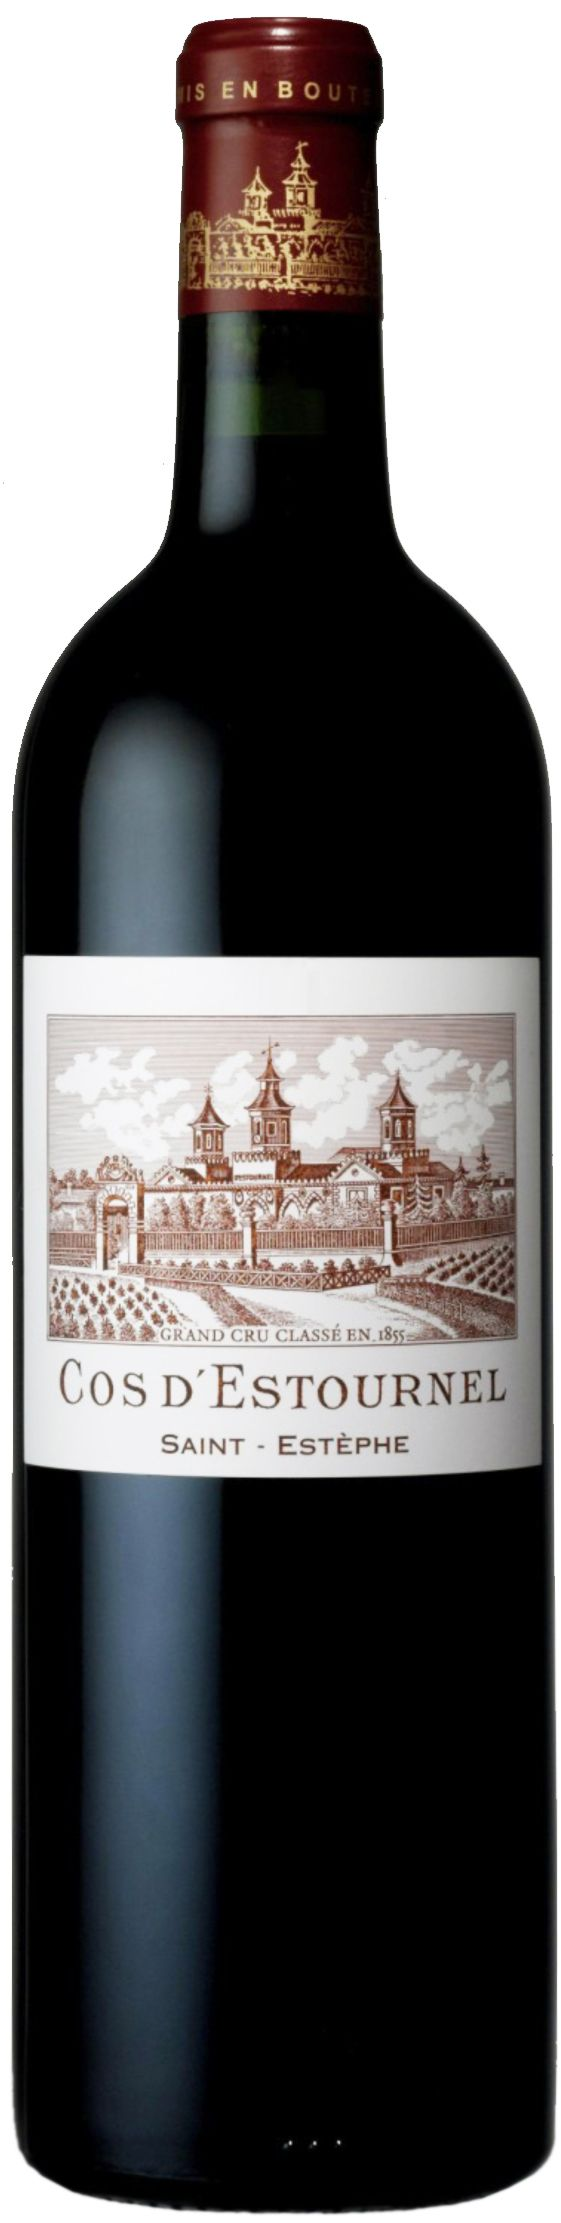 Chateau Cos d'Estournel, Grand Cru Classe, 2008